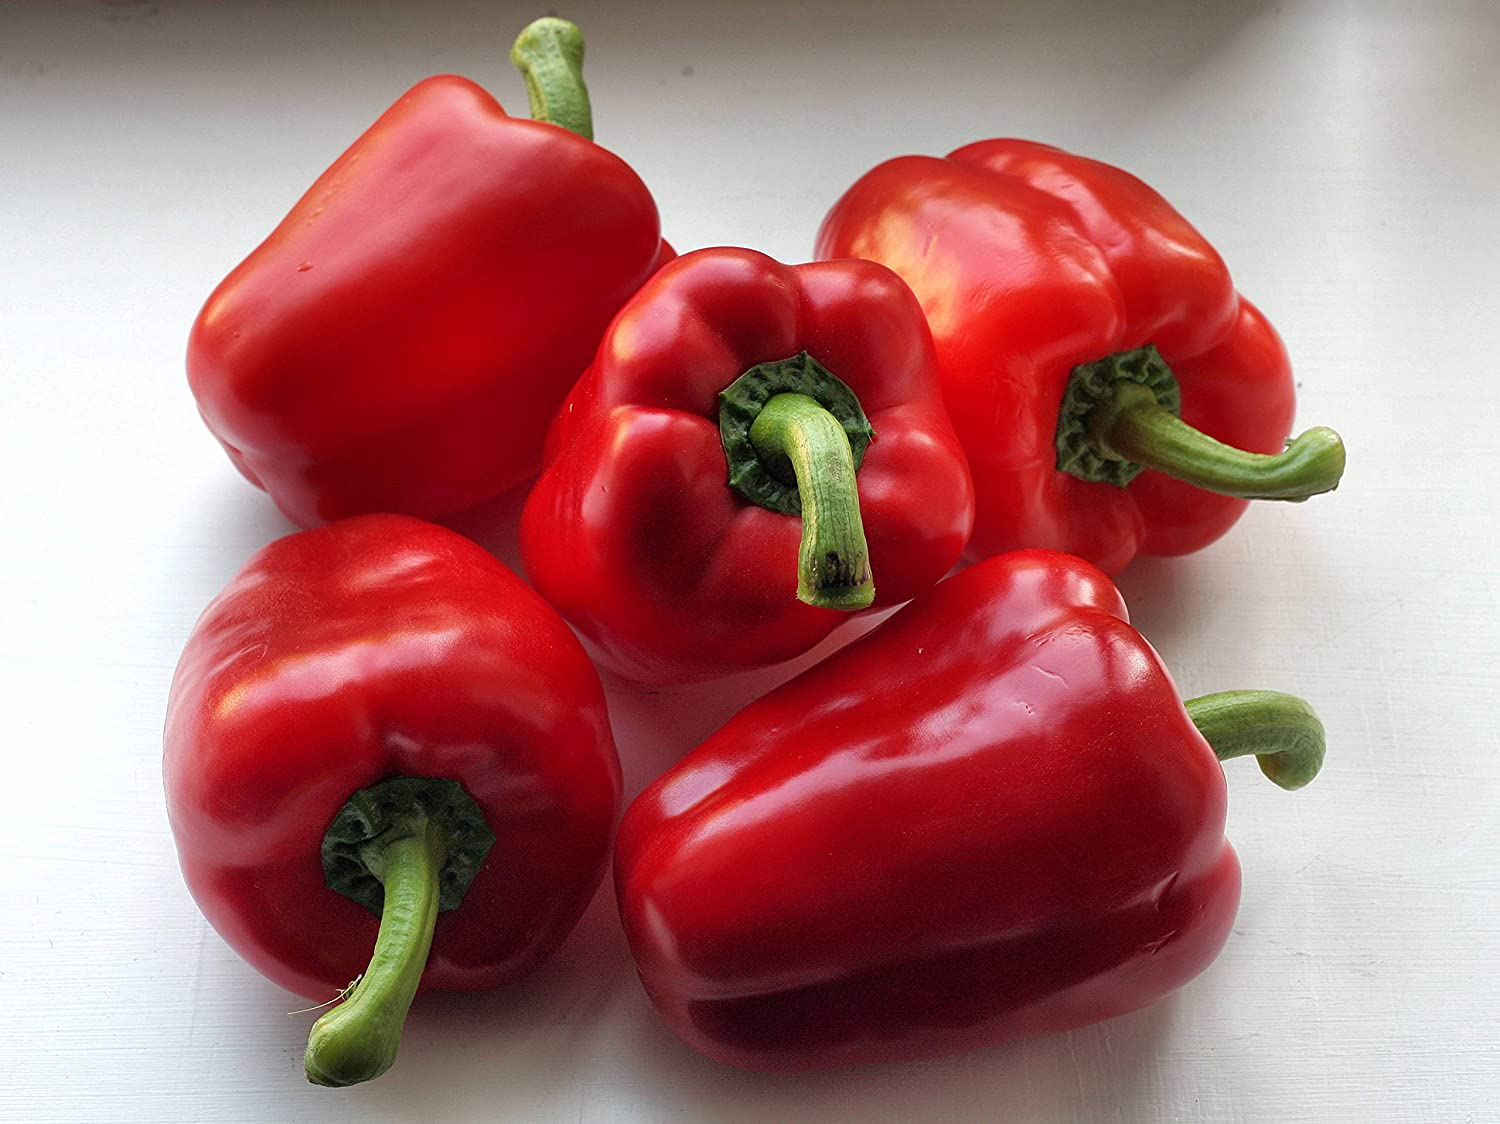 Big Red Bell Pepper Seeds, 50+ Premium Organic Heirloom Seeds, Fantastic Addition to Home Garden!, (Isla's Garden Seeds) Non GMO - 90% Germination, Highest Quality, 100% Pure